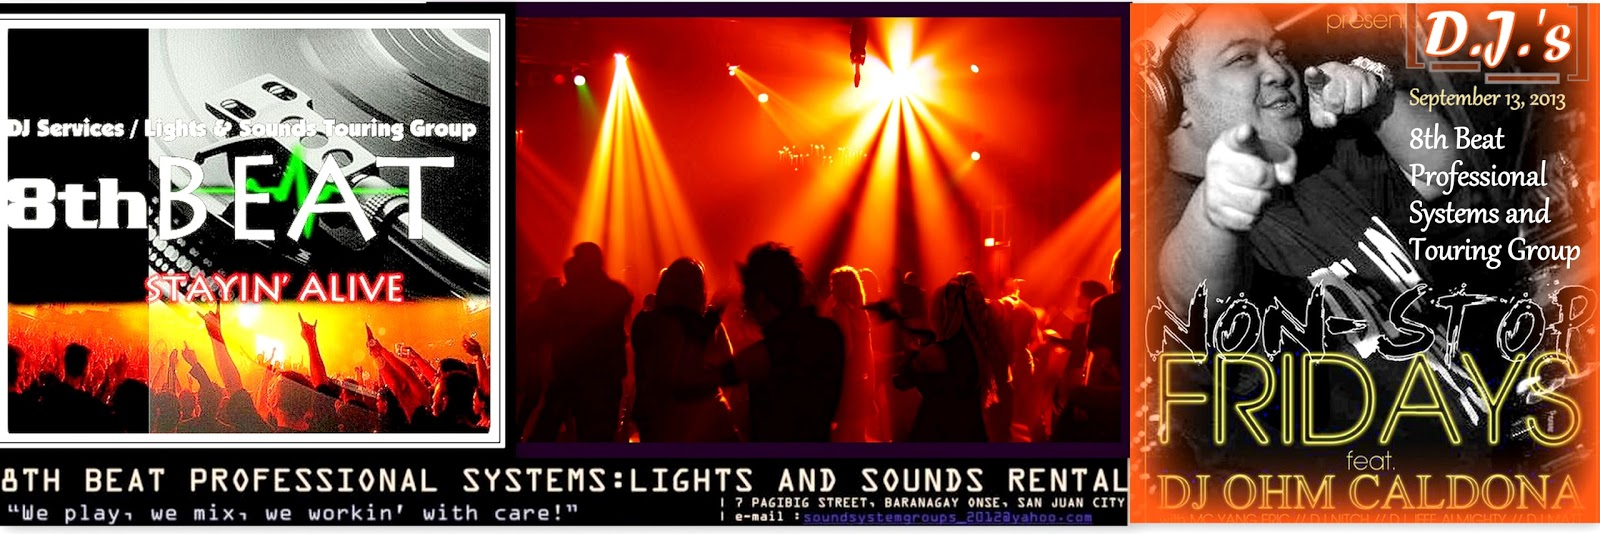 Lights And Sounds Rental For Wedding Debut Birthday Party